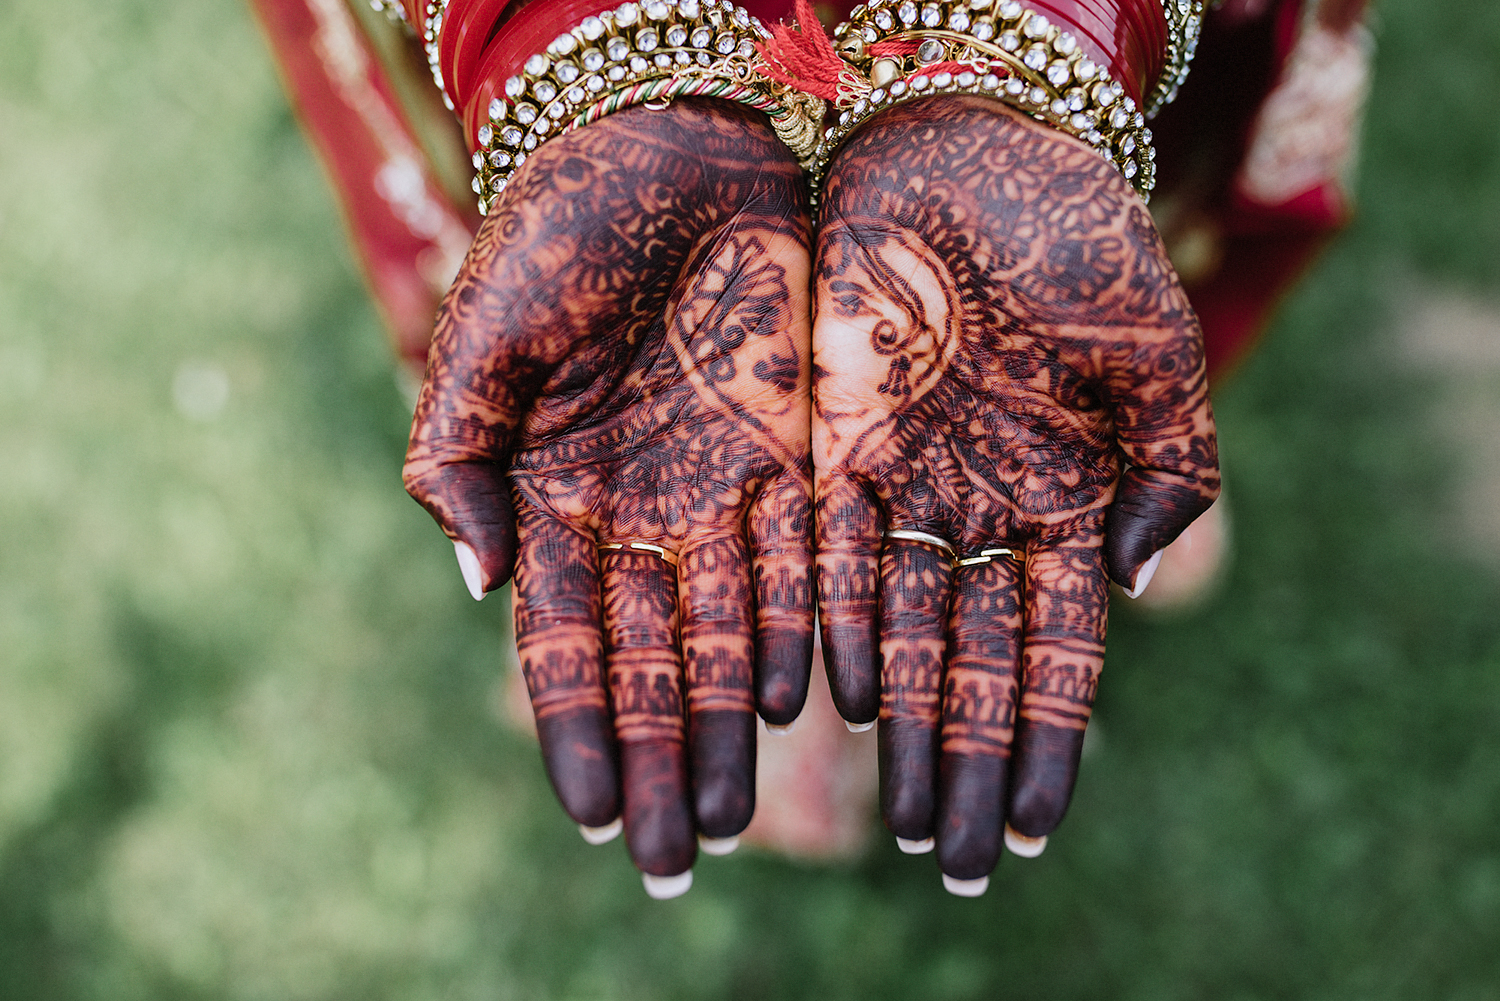 Toronto-Photojournalism-wedding-photographers-3B-Photography-Candid-Documentary-Film-Photography-Analog-Ontario-Hamilton-Port-Perry-best-venues-portrait-of-bride-in-traditional-dress-henna-details-on-hands.jpg